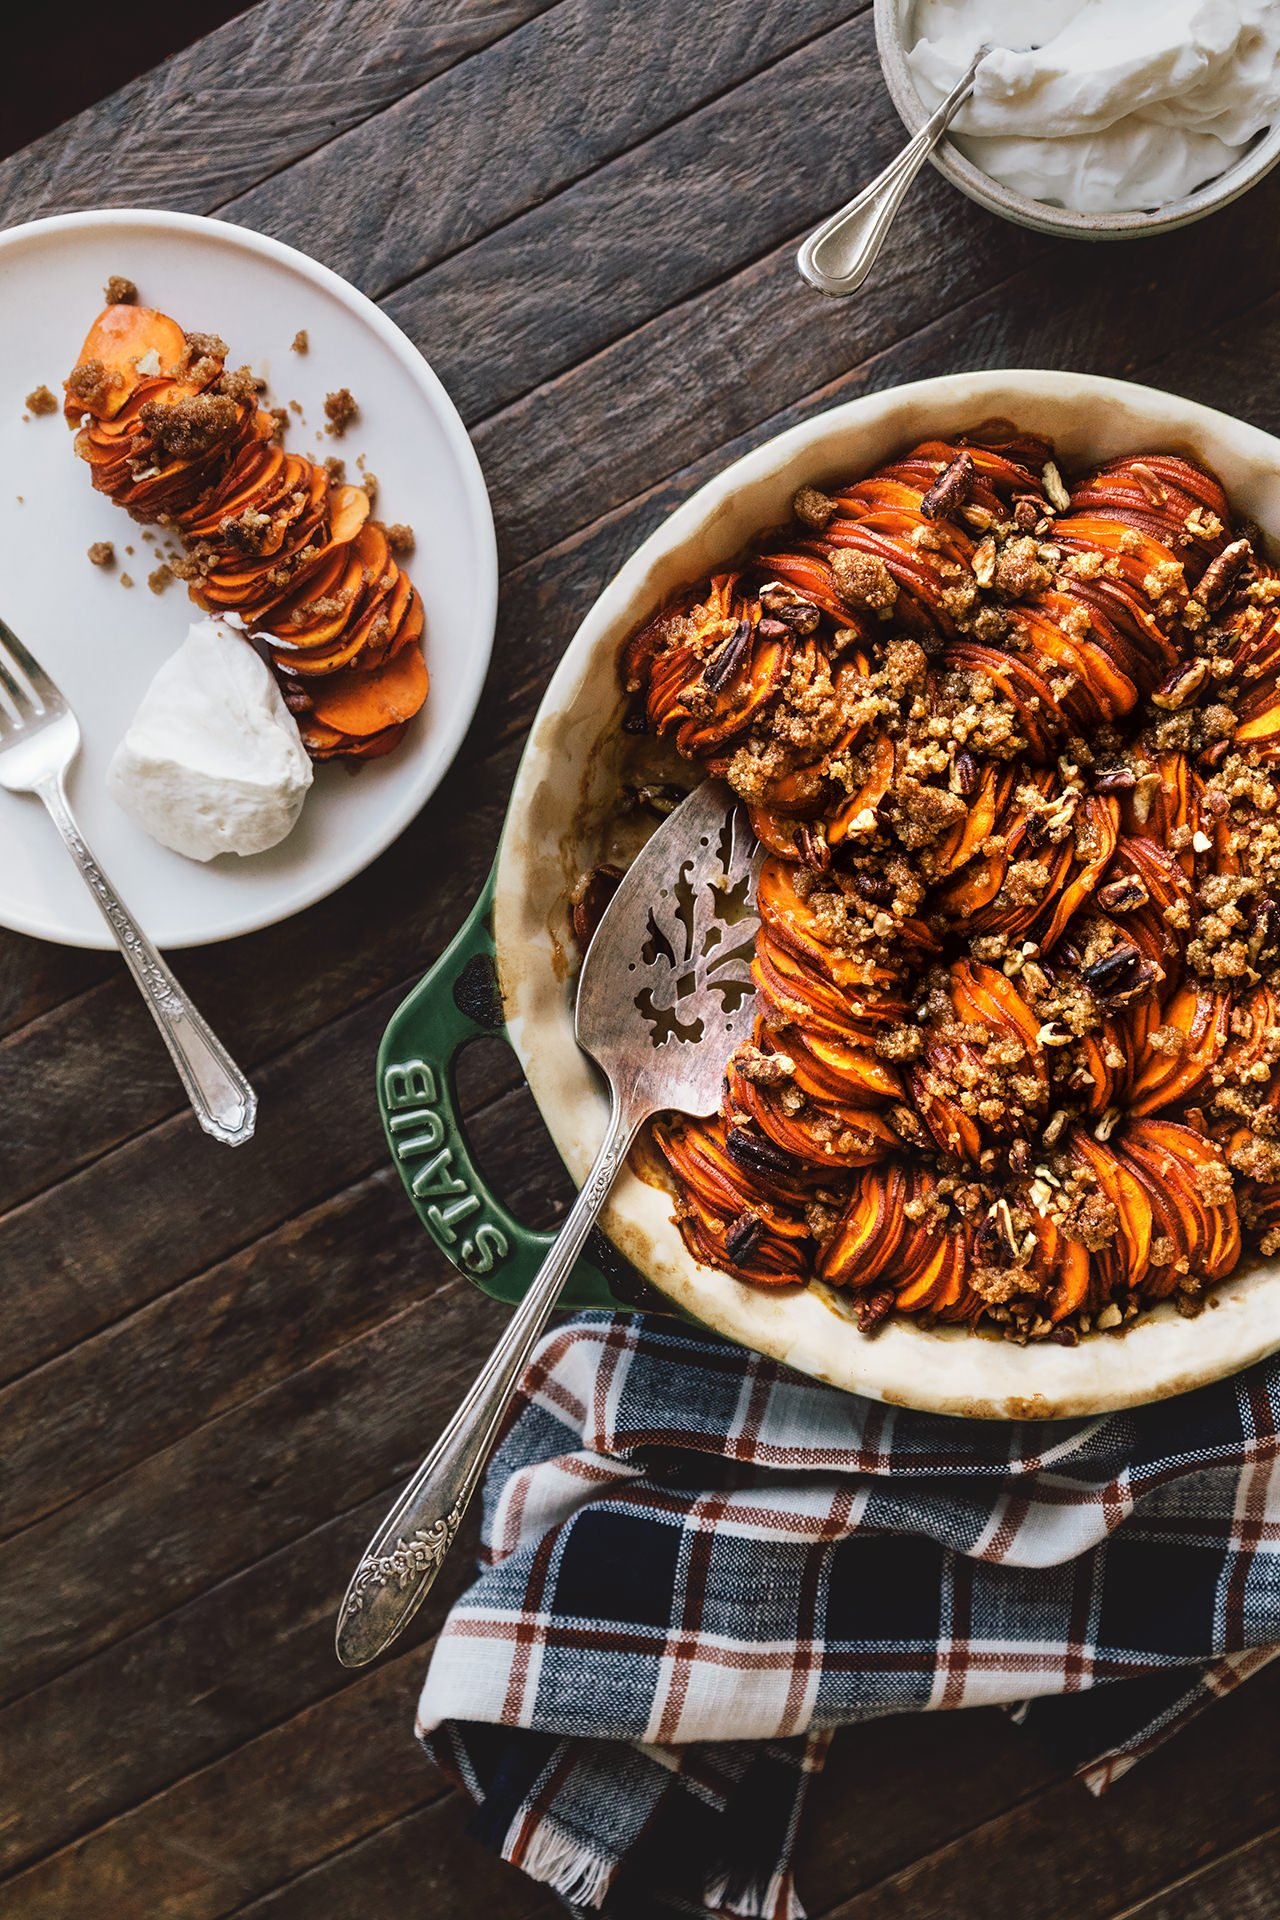 Sweet Potato Gratin | HonestlyYUM (honestlyyum.com)